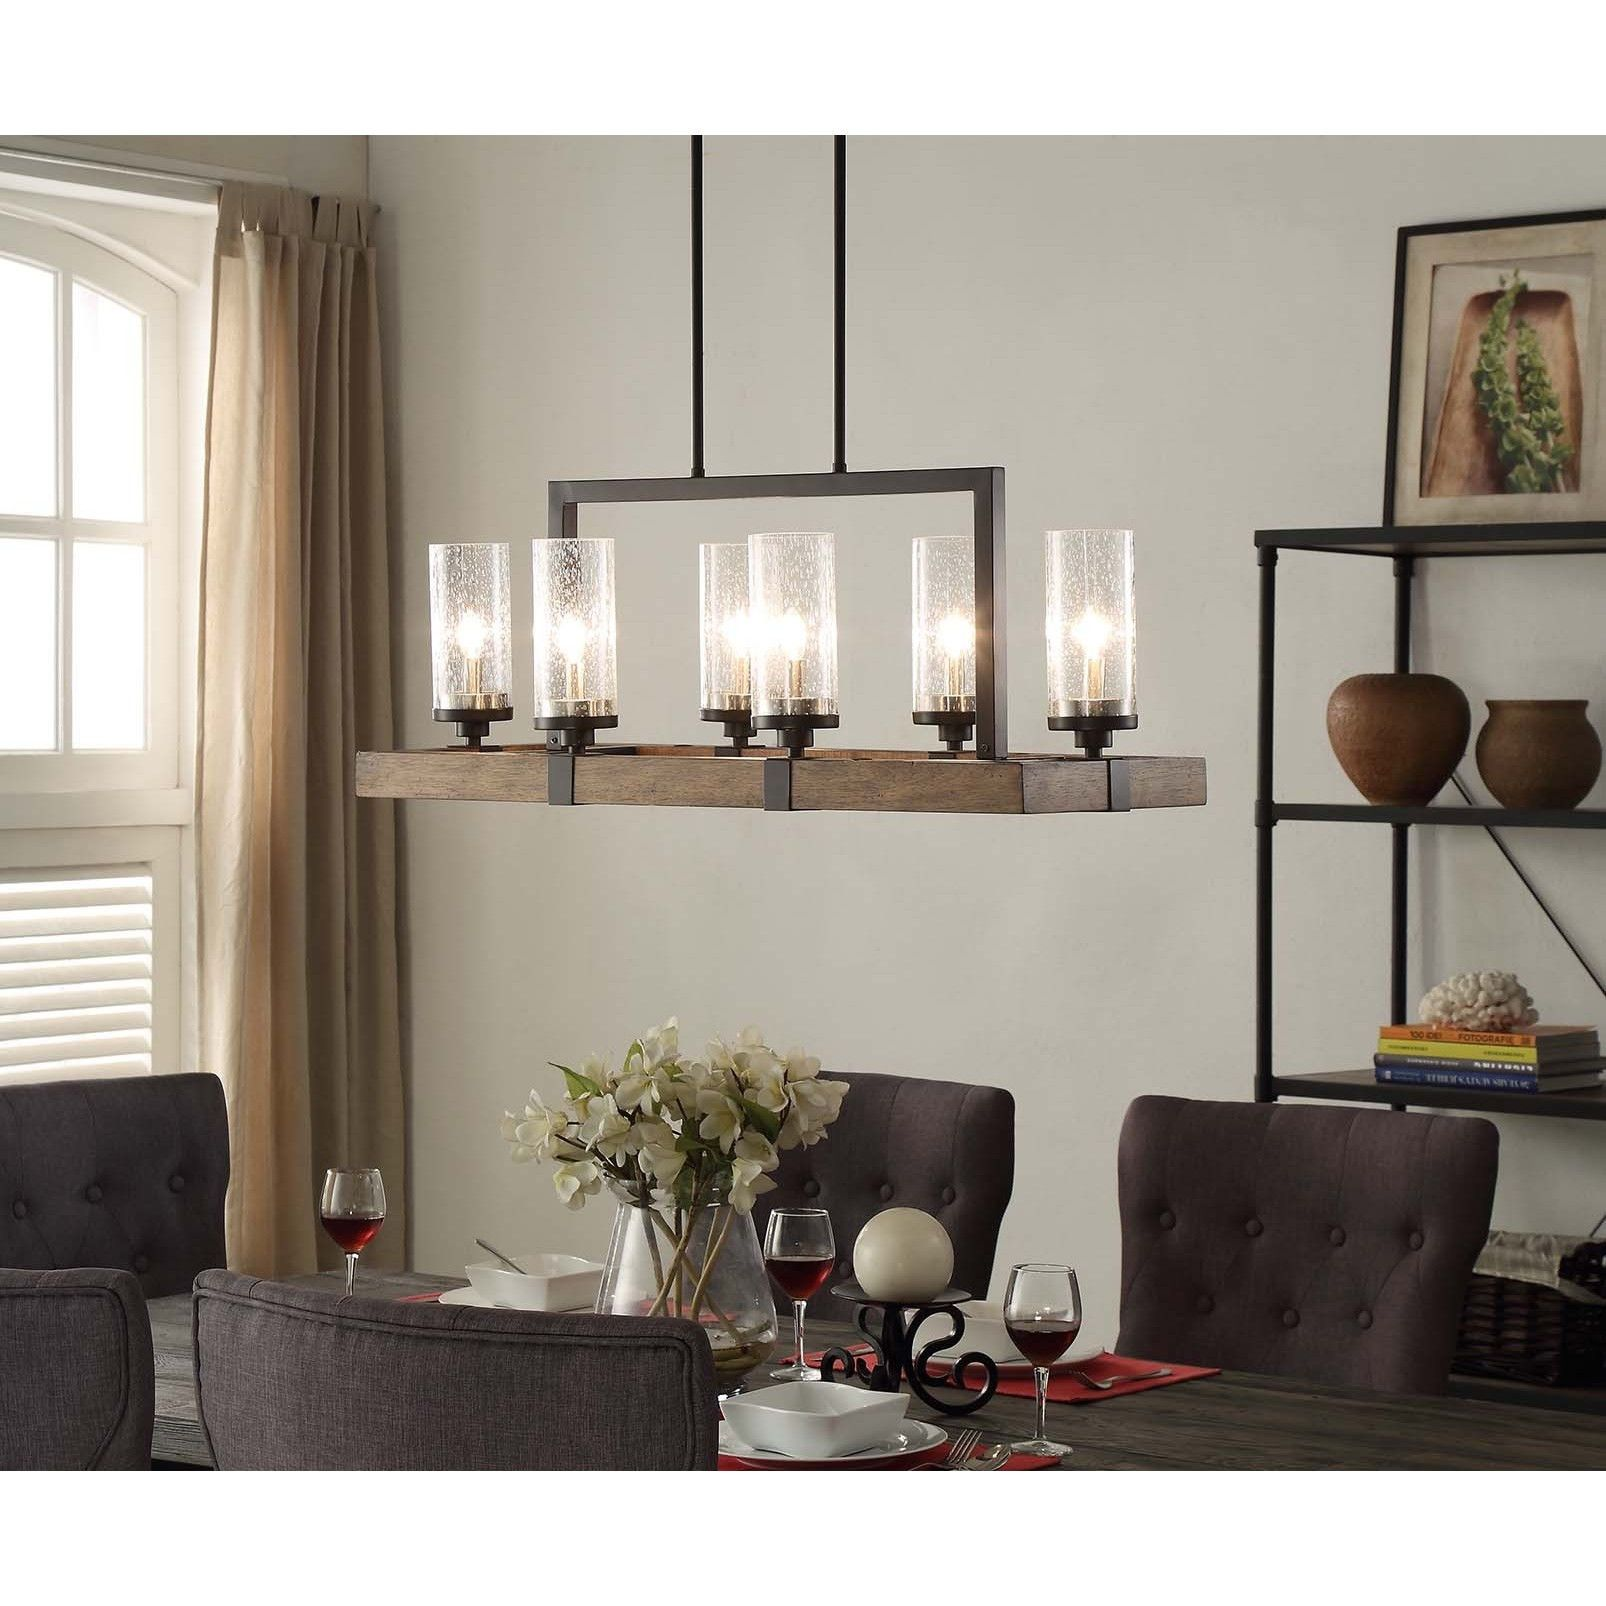 The Gray Barn Vineyard Metal And Wood 6 Light Linear Chandelier With Seeded Glass Shades Farmhouse Dining Room Lighting Farmhouse Dining Room Dining Room Light Fixtures